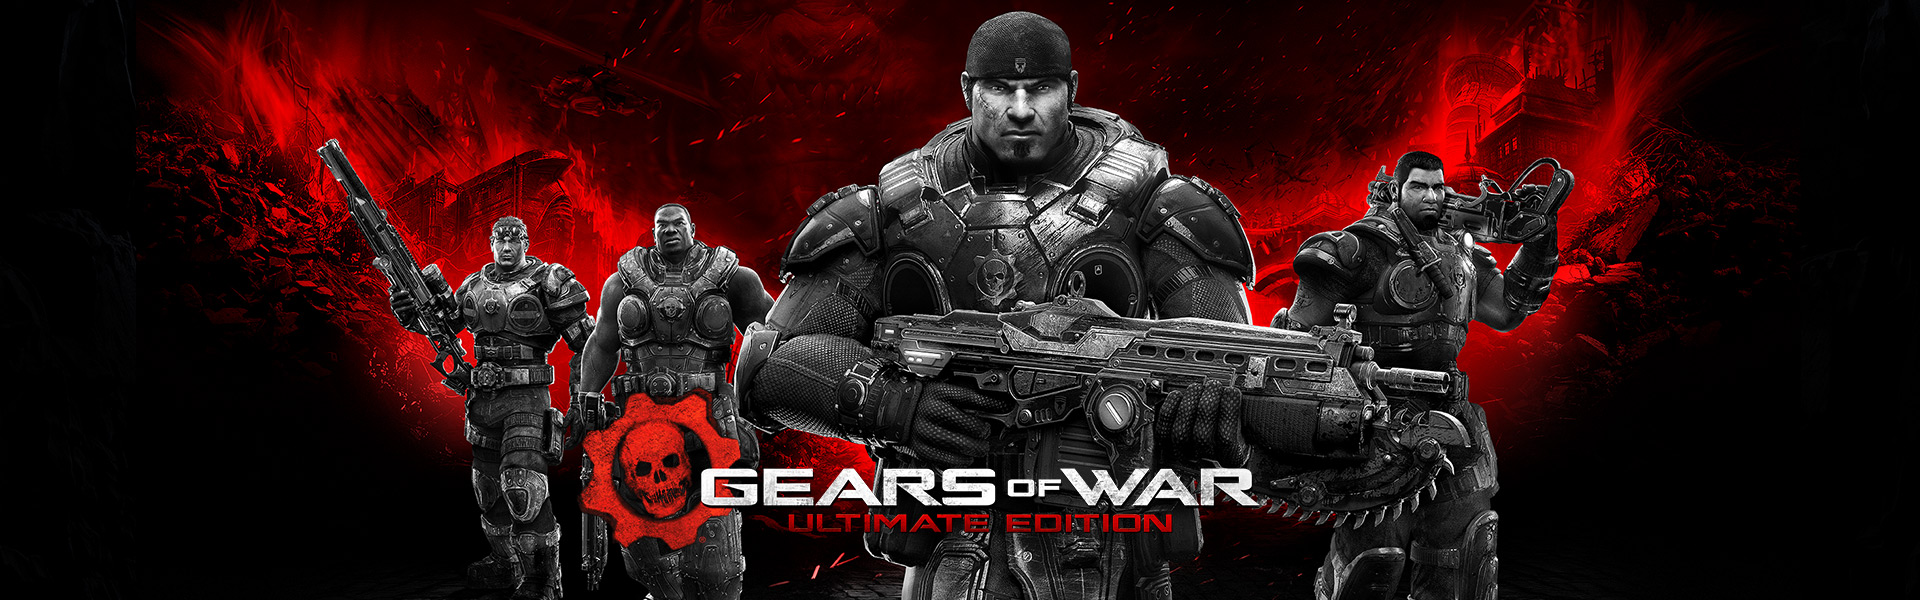 Gears of War Ultimate, karakterene Damon Baird, Augustus Cole, Marcus Fenix og Dominic Santiago holder våpen